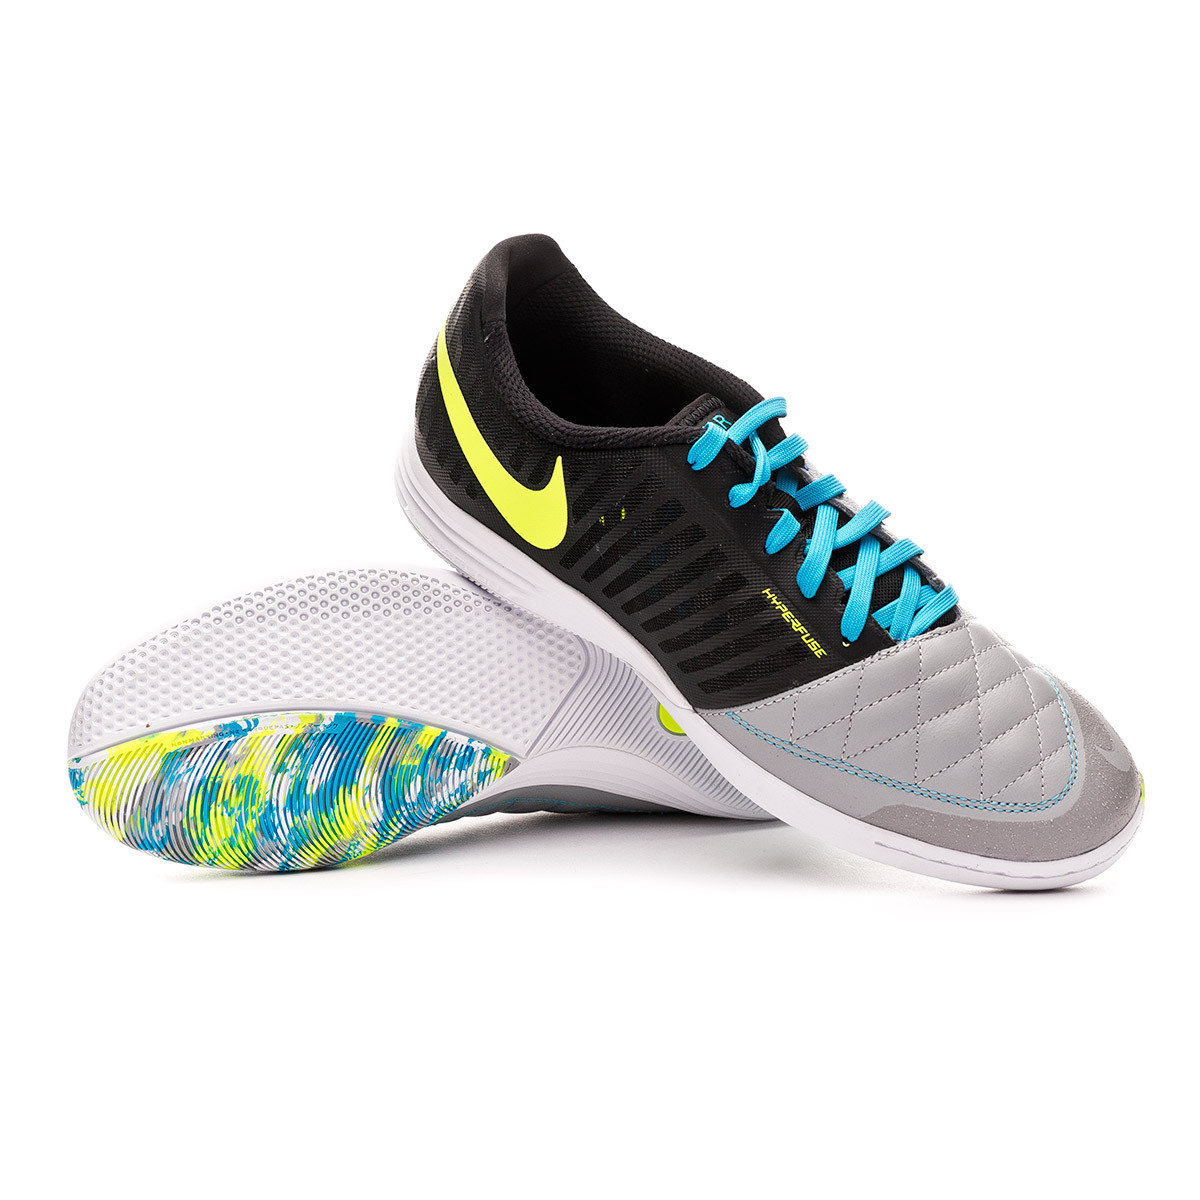 Jarra preámbulo Cambio  Futsal Boot Nike Lunar Gato II Black-Volt-Wolf grey-Light current blue -  Football store Fútbol Emotion